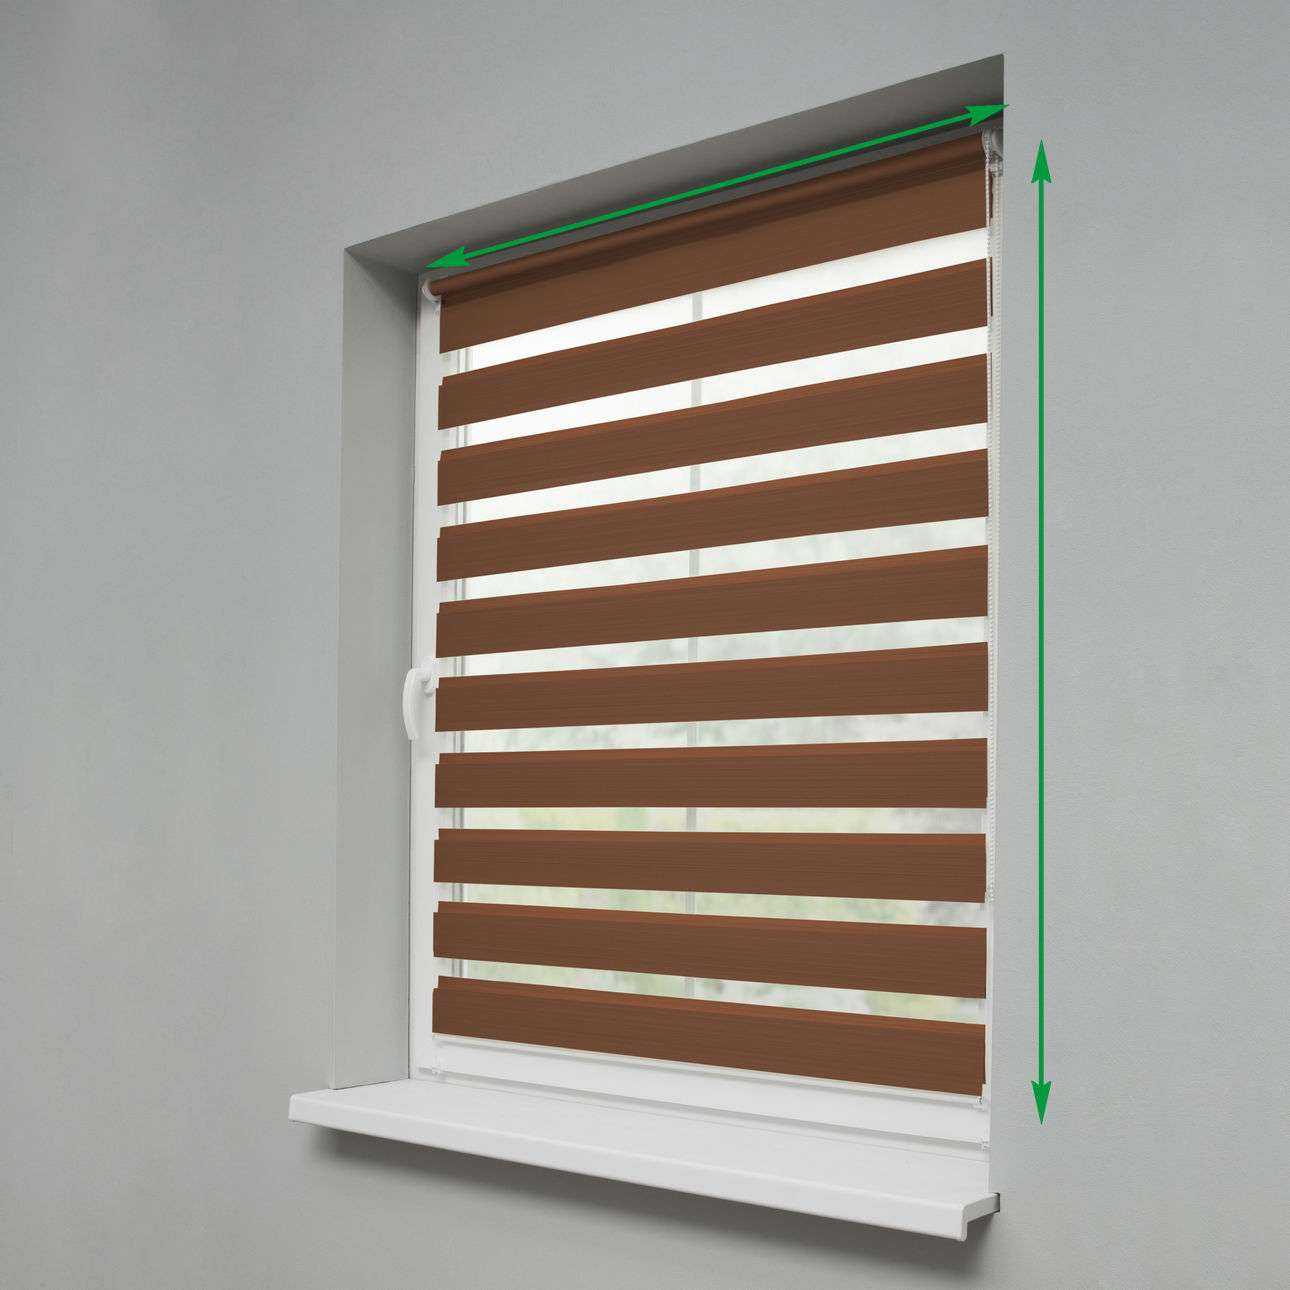 Mini Day & Night Roller Blind in collection Roller blinds Day & Night (Venetian blind), fabric: 0215